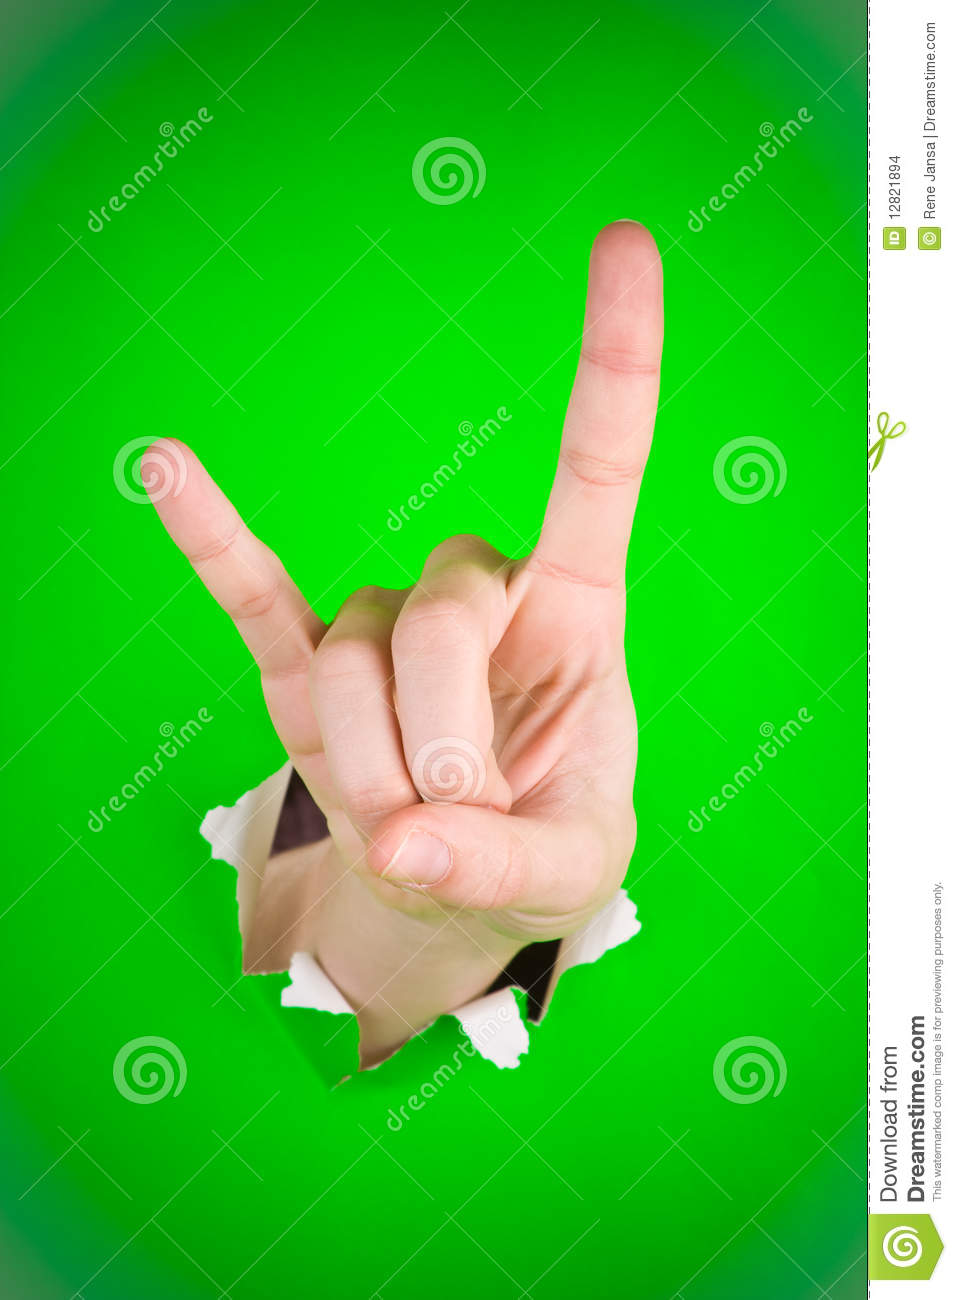 Rock On Hand Sign Stock Images - Image: 12821894